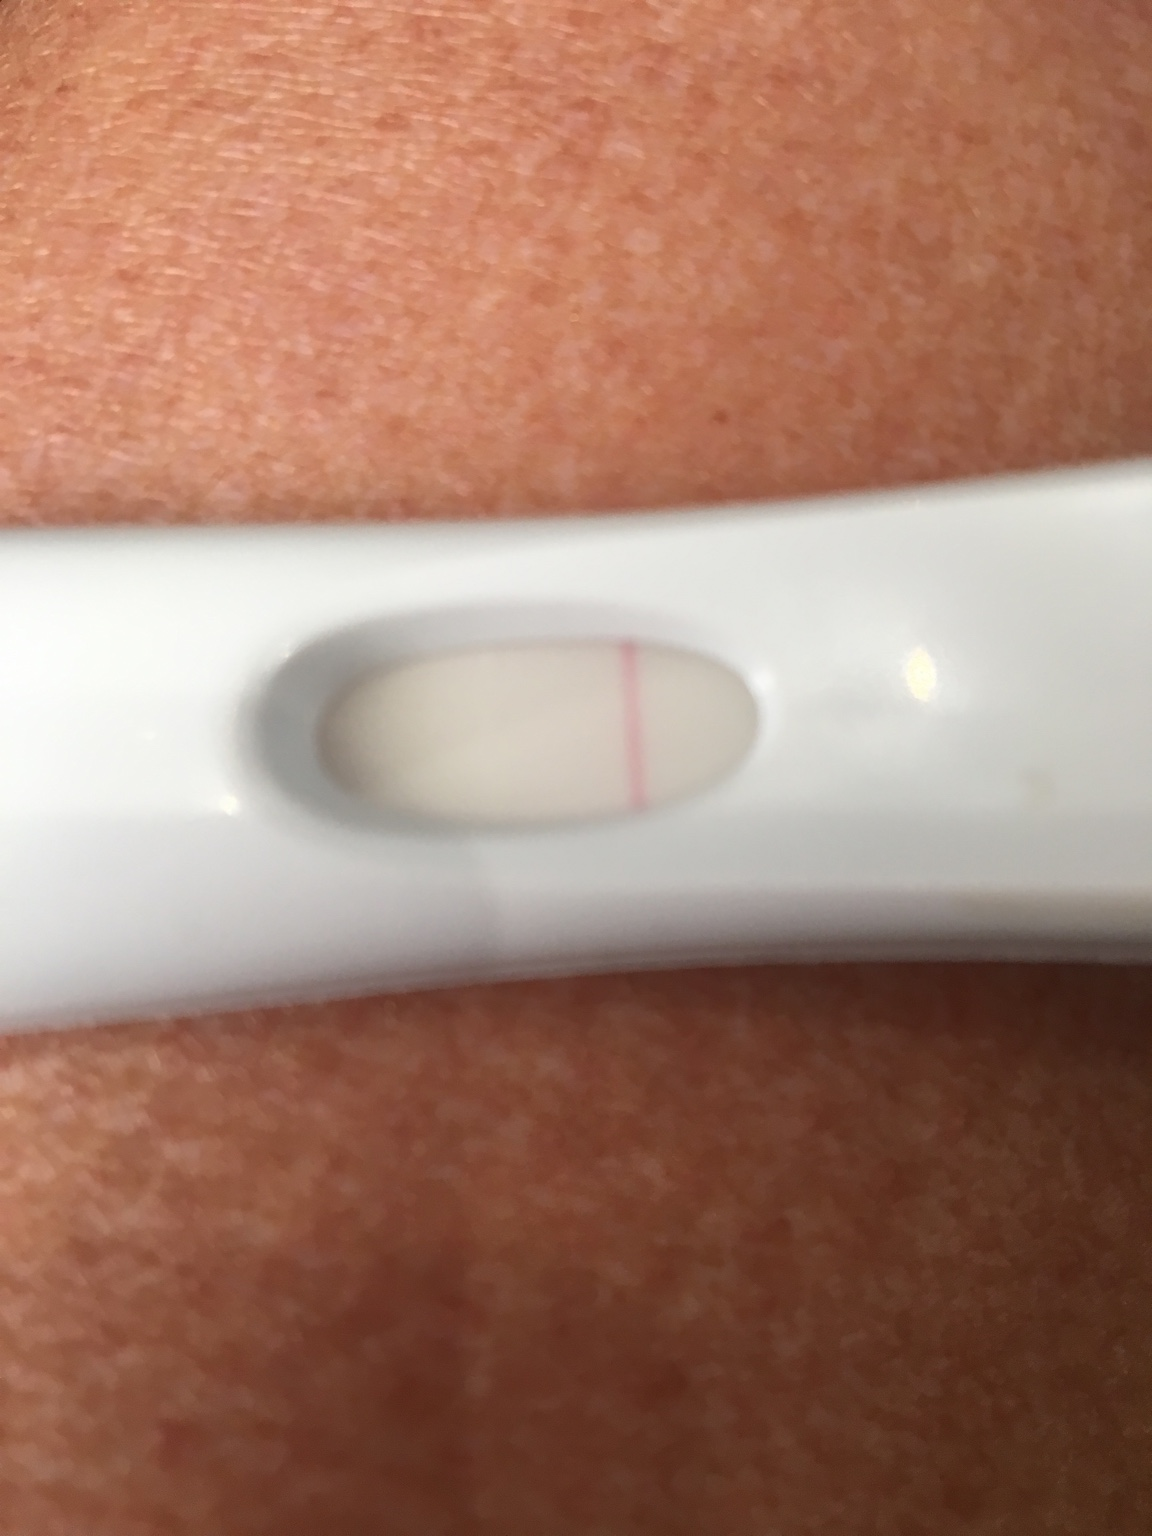 Thick white discharge at 11dpo  can anyone see a line